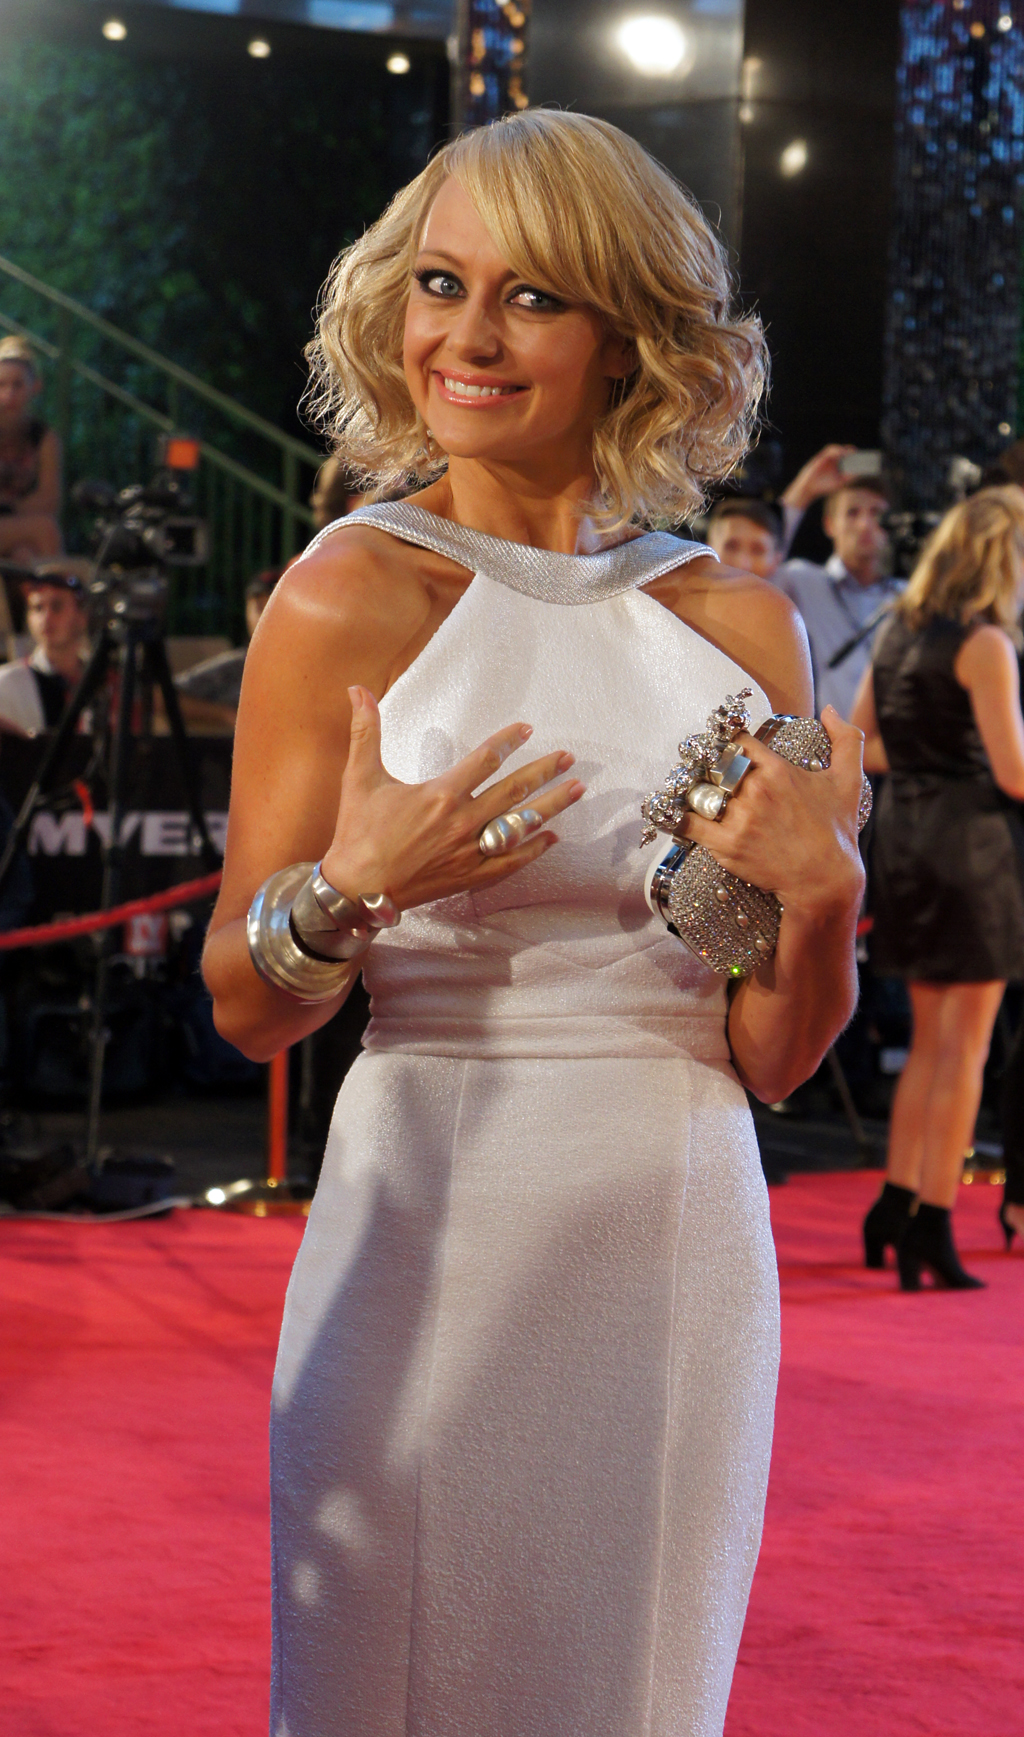 2013 Logies co-host Shelley Craft glitters in white and silver.